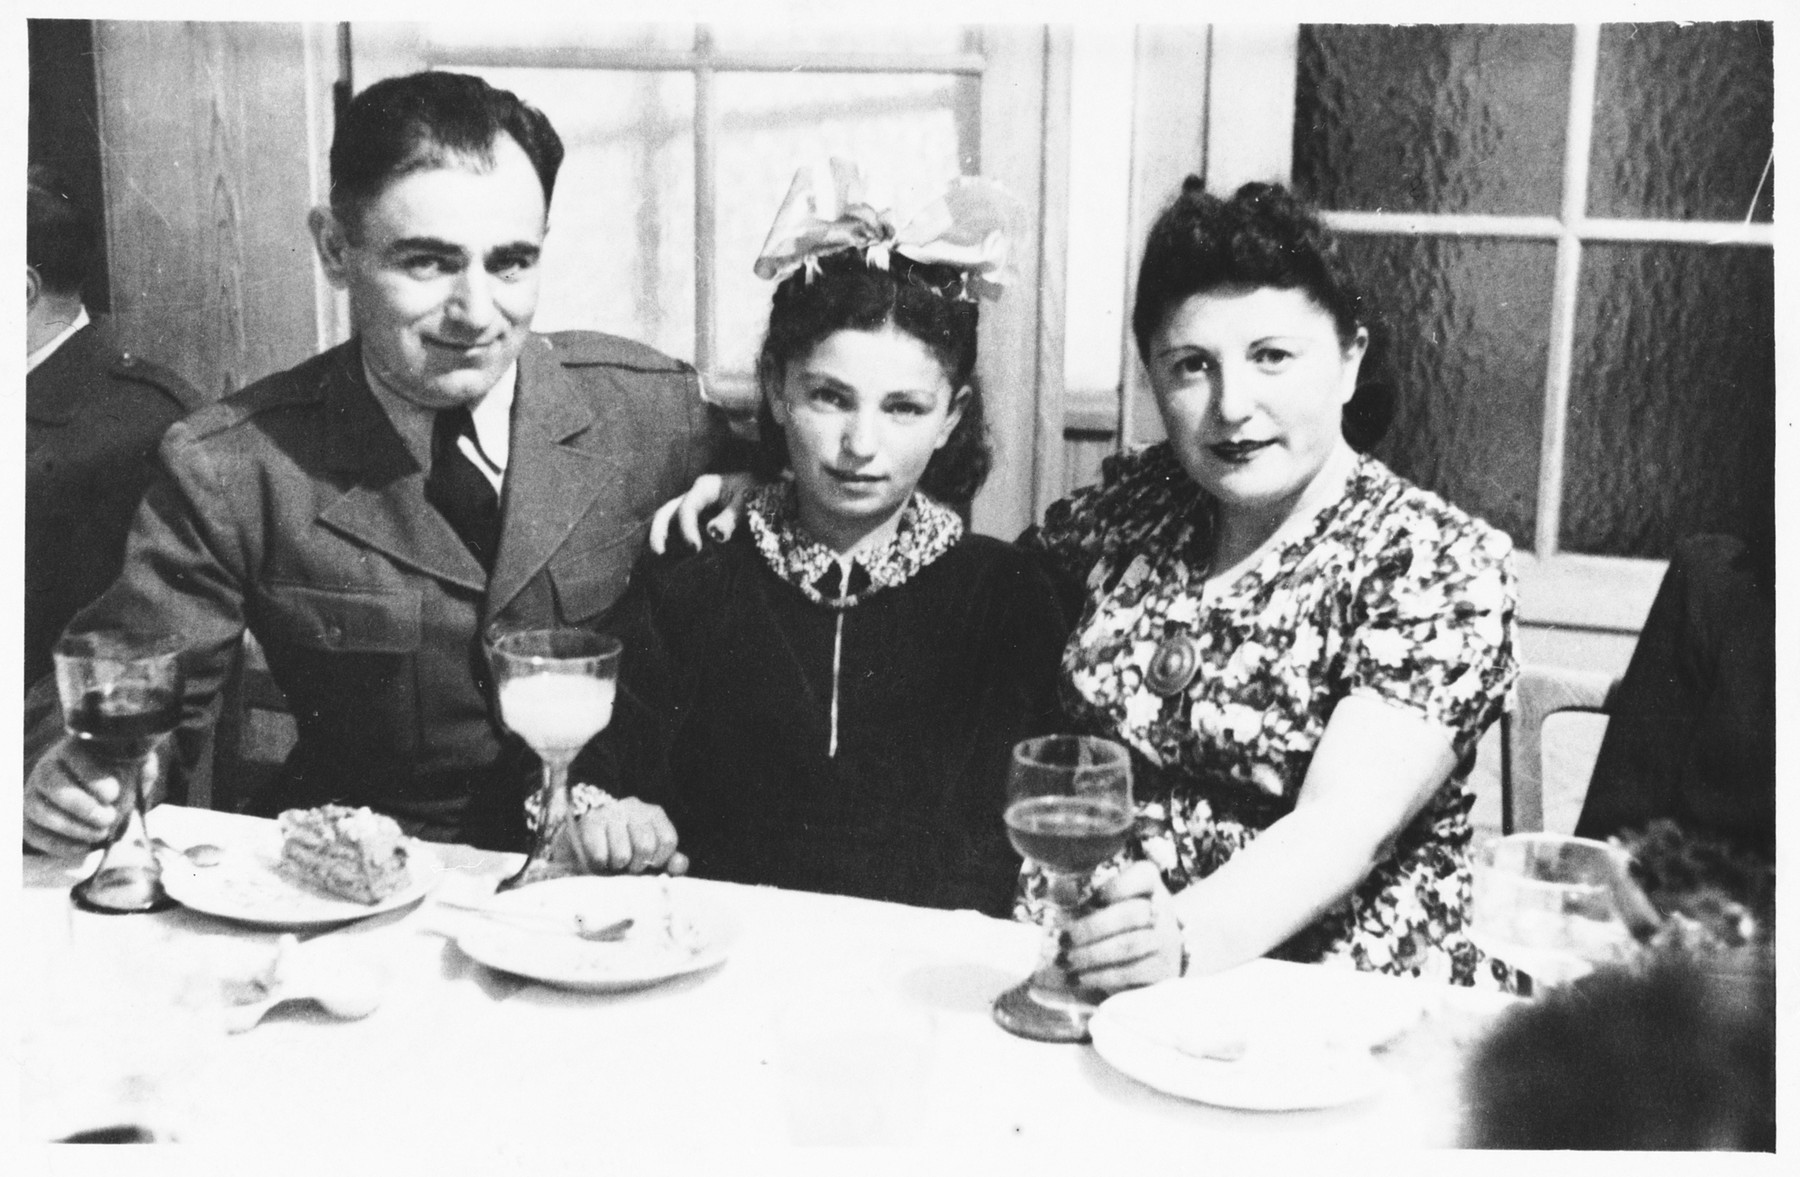 Issak, Chaia and Fira Libstug enjoy a festive meal at the Foehrenwald displaced persons camp.